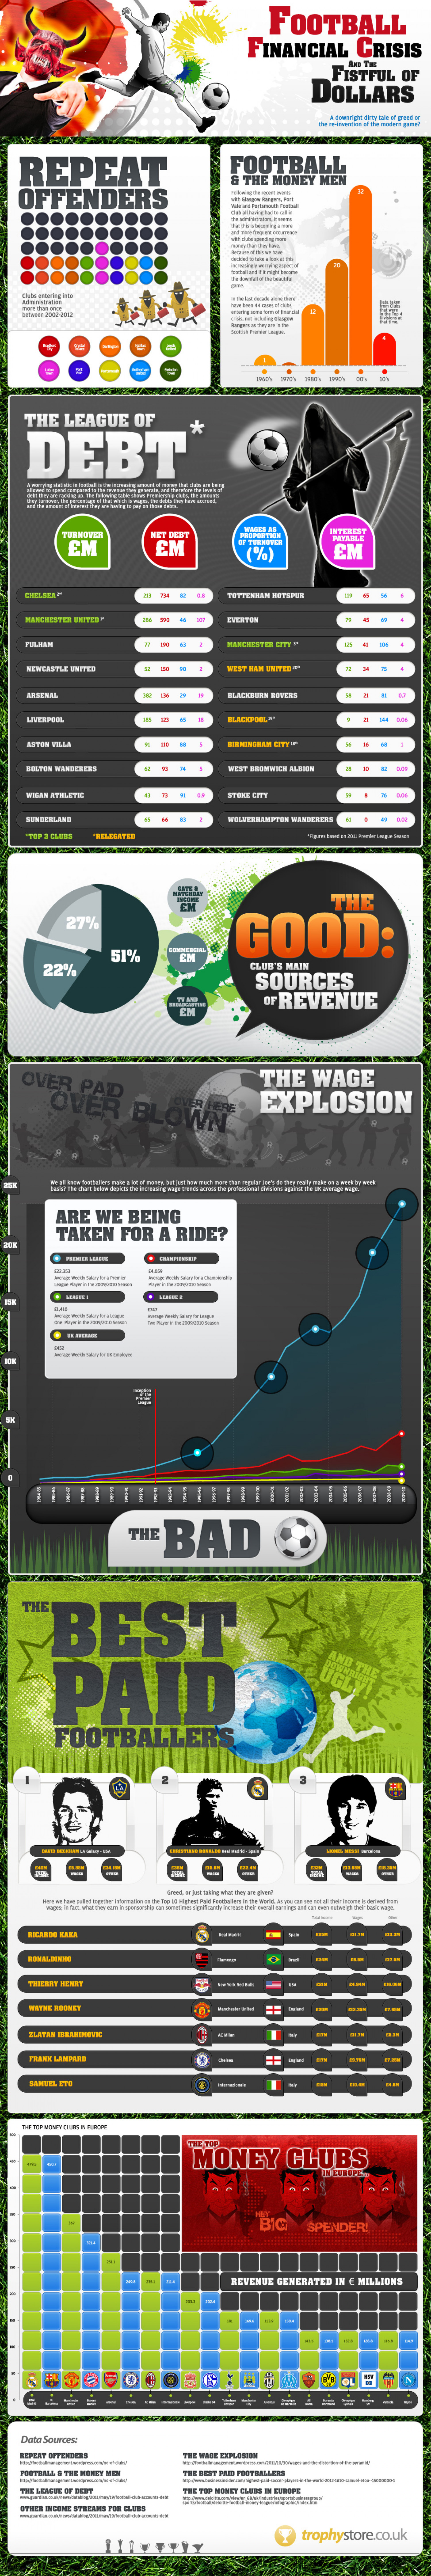 Football Financial Crisis Infographic Infographic